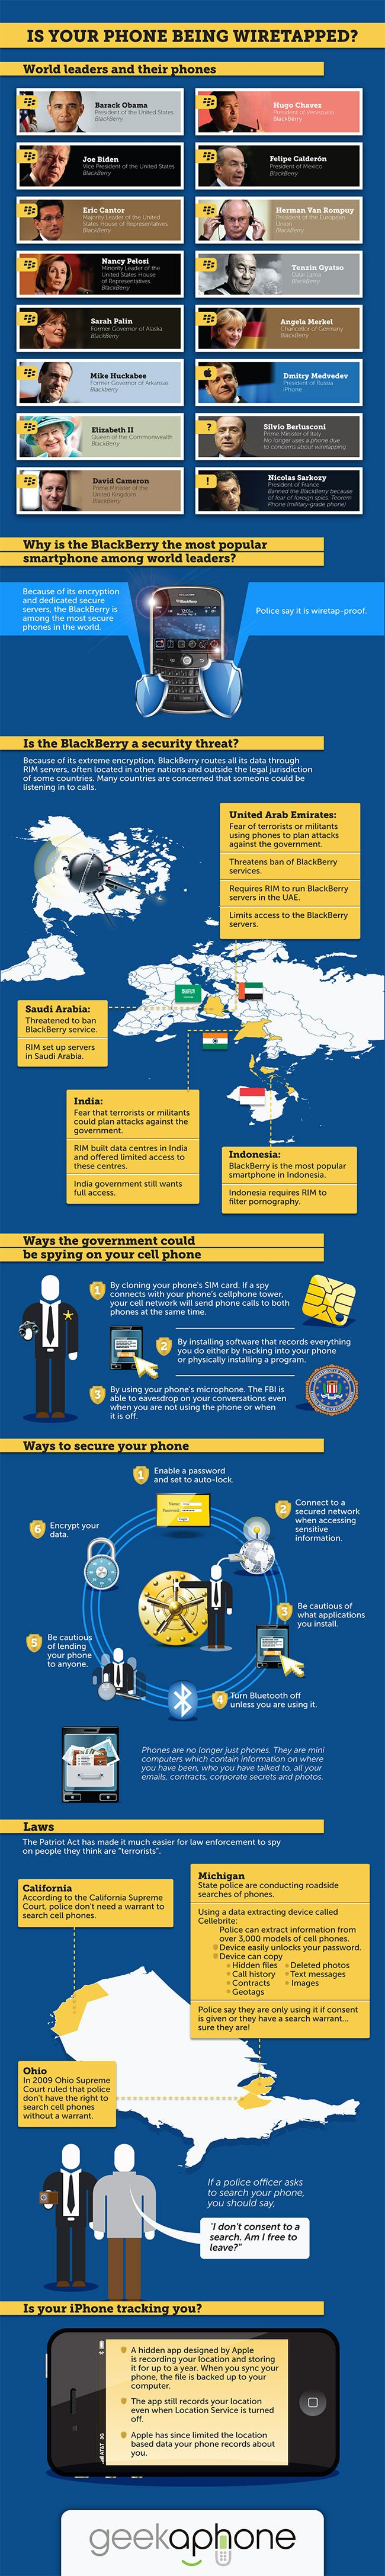 Cell Phone Wiretapping: Mobile Security Explained - Infographic